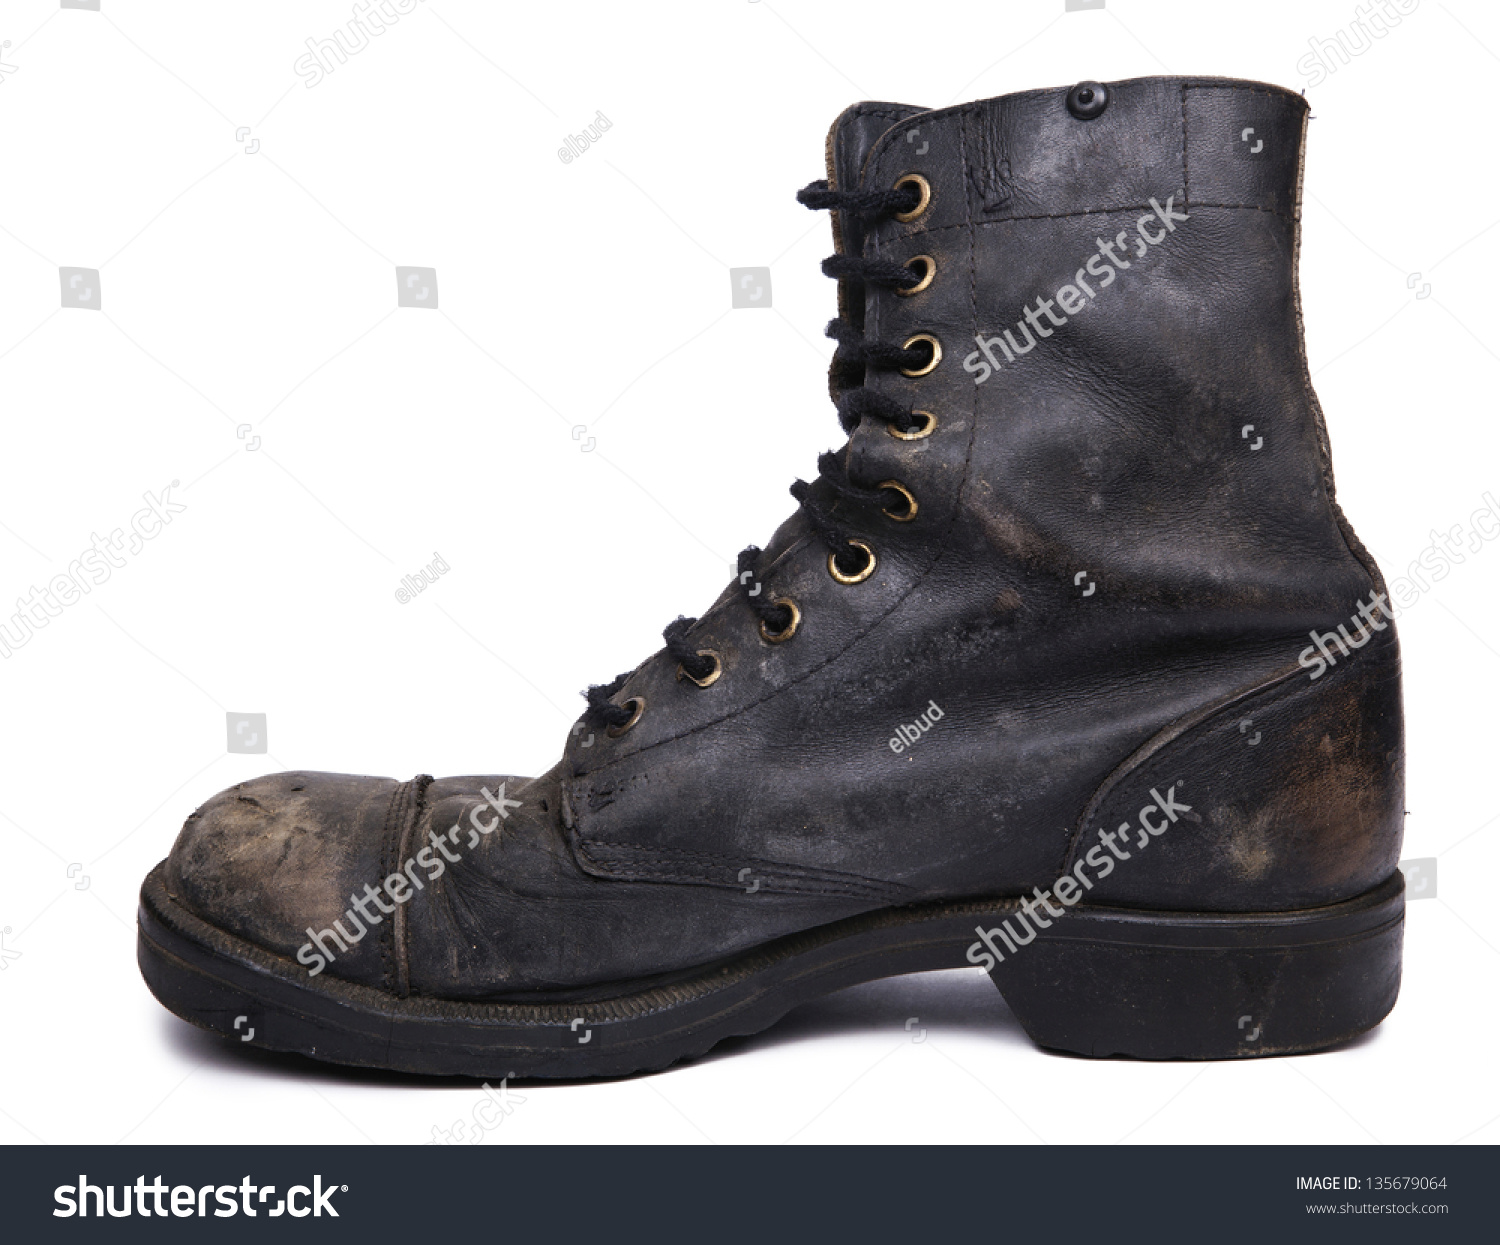 Side View Very Worn Right Boot Stock Photo 135679064 - Shutterstock